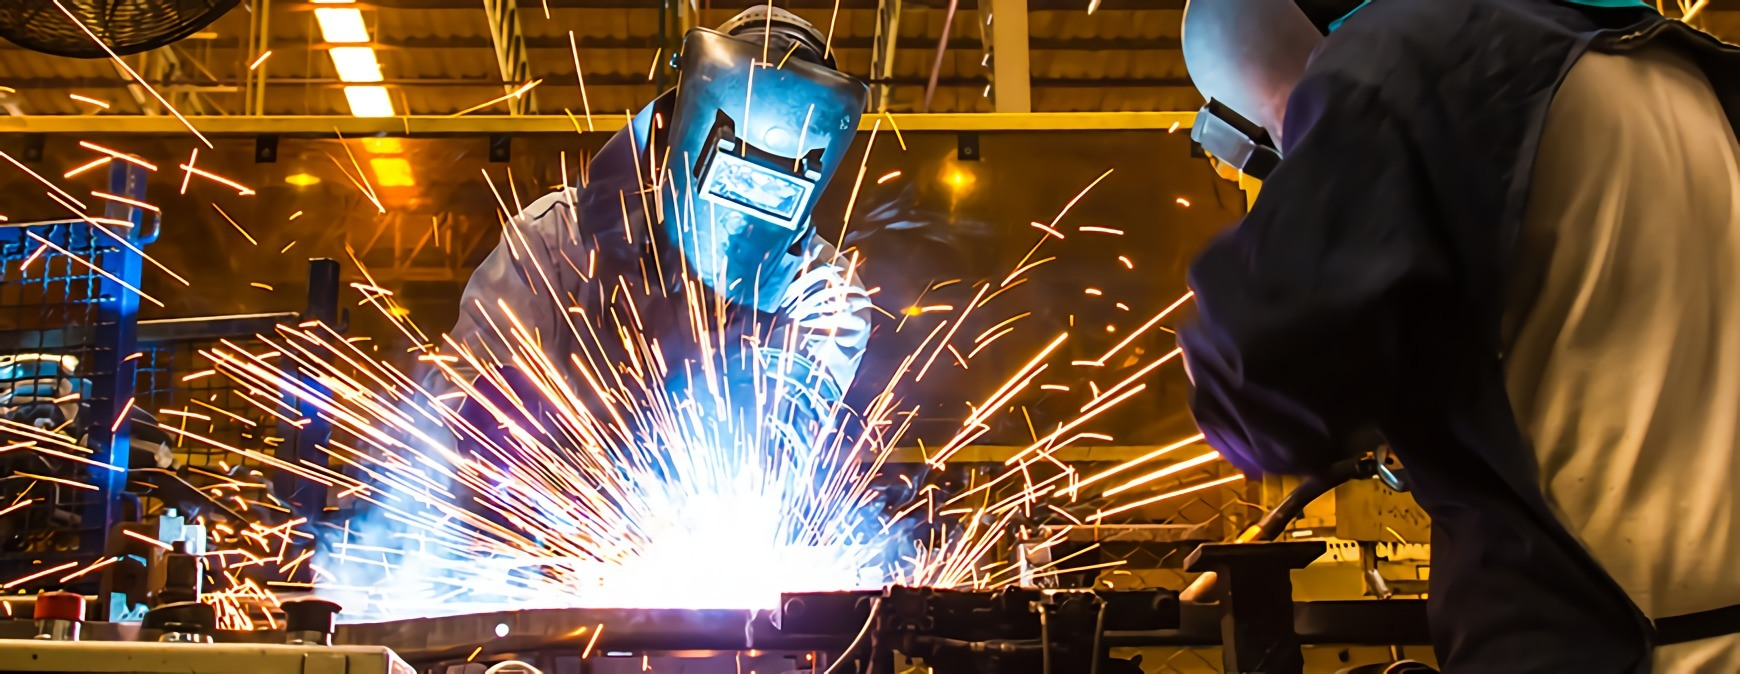 welding school guide: how to become a certified welder - tulsa ...